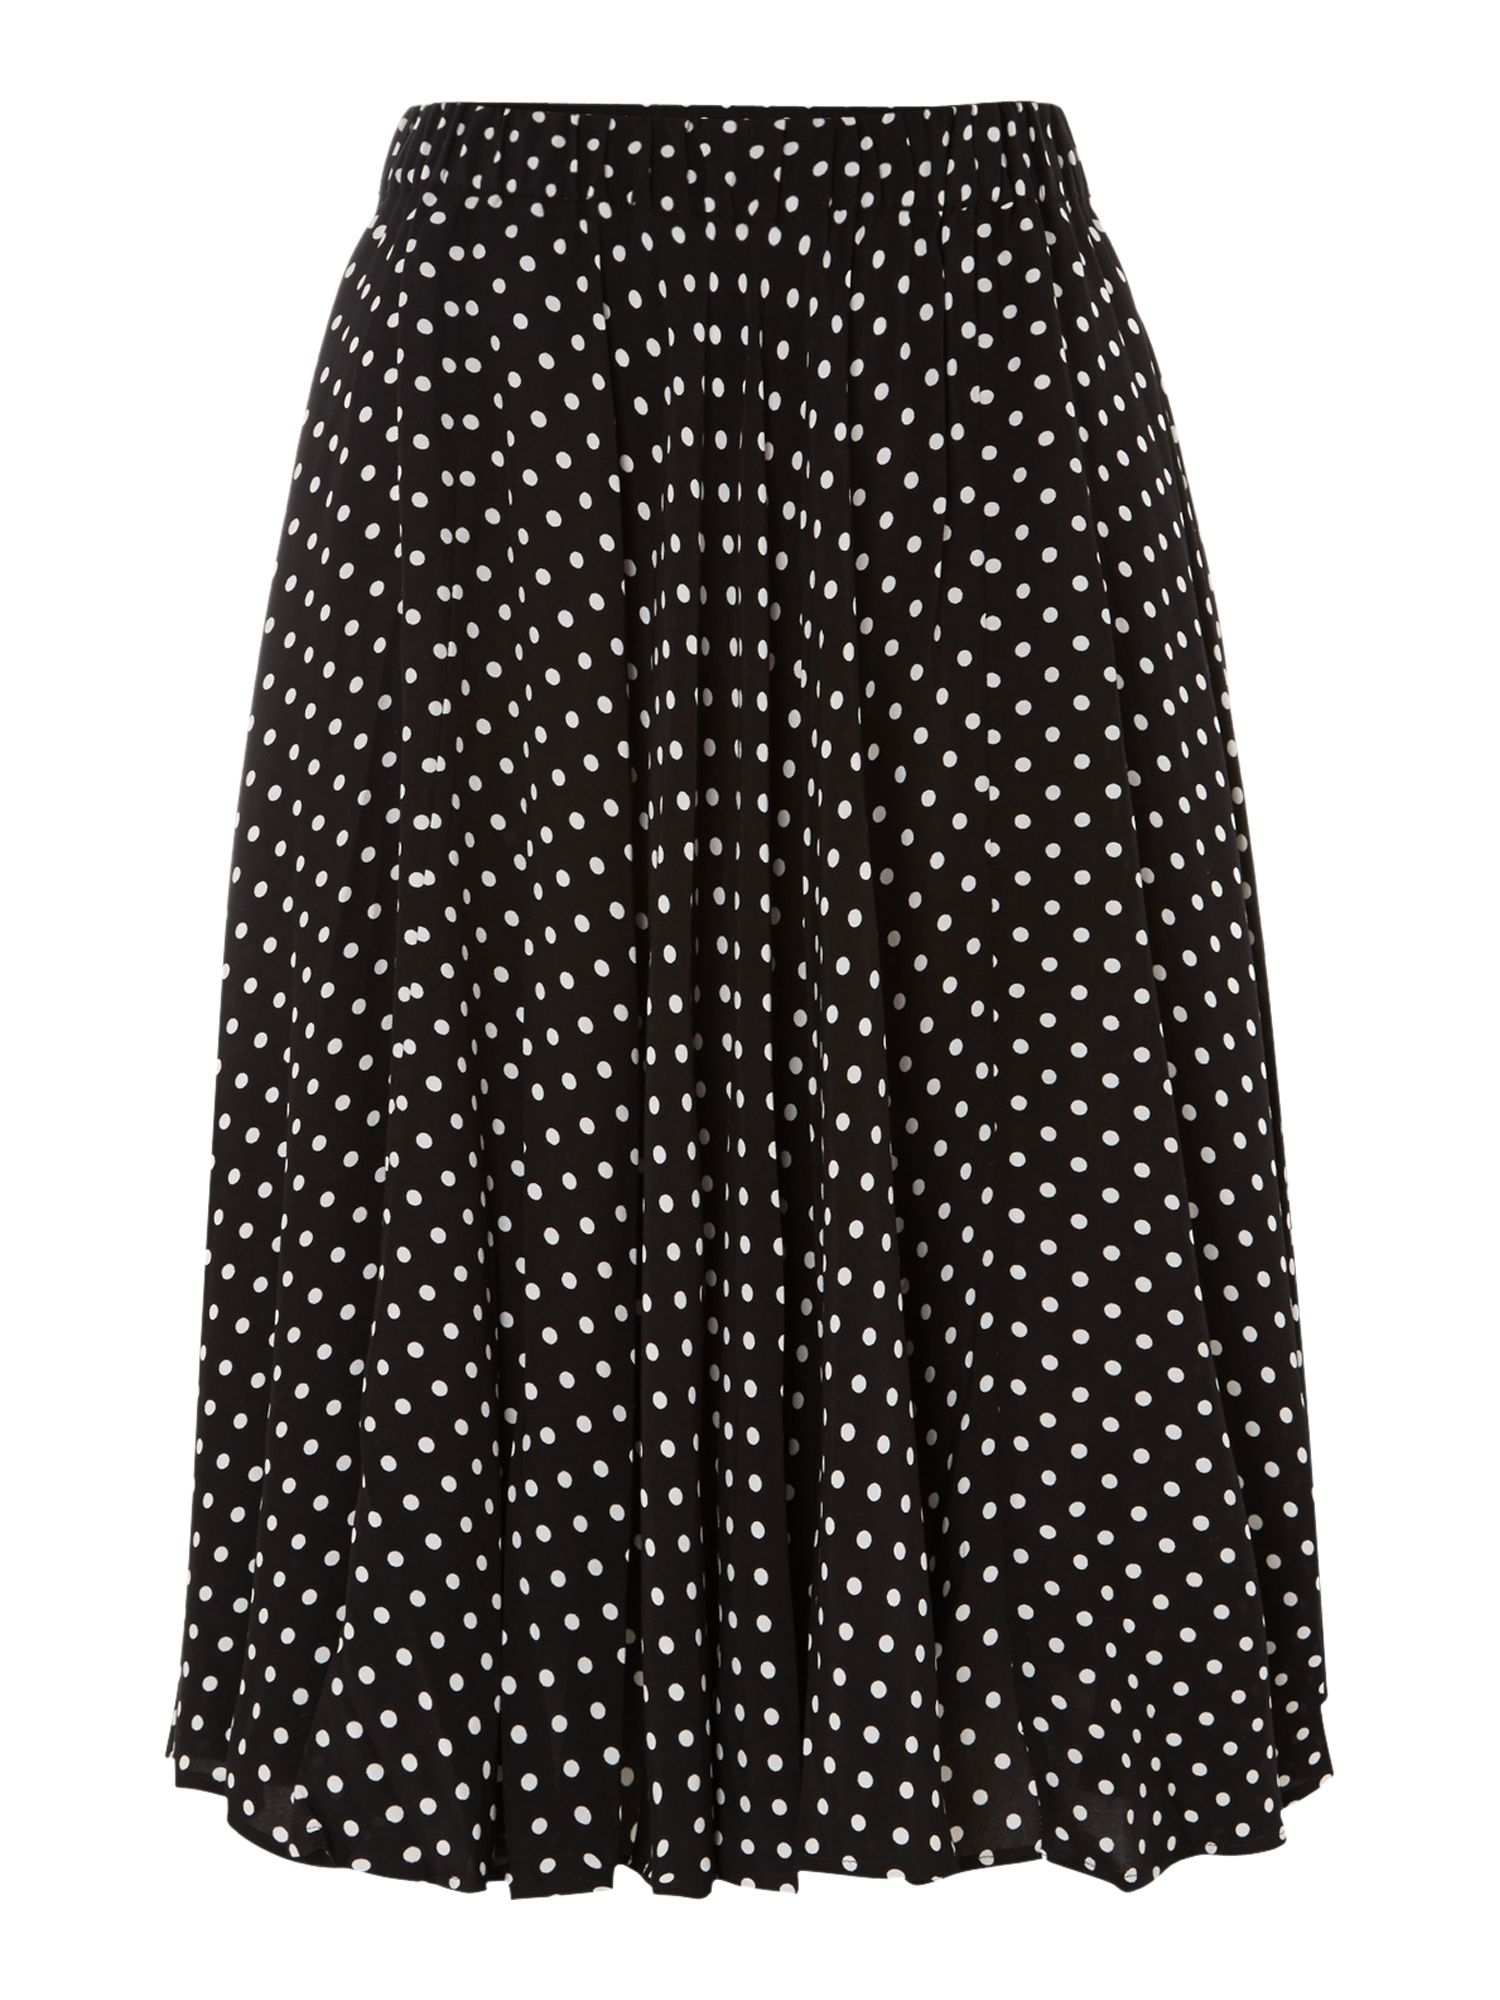 Polka dot full skirt